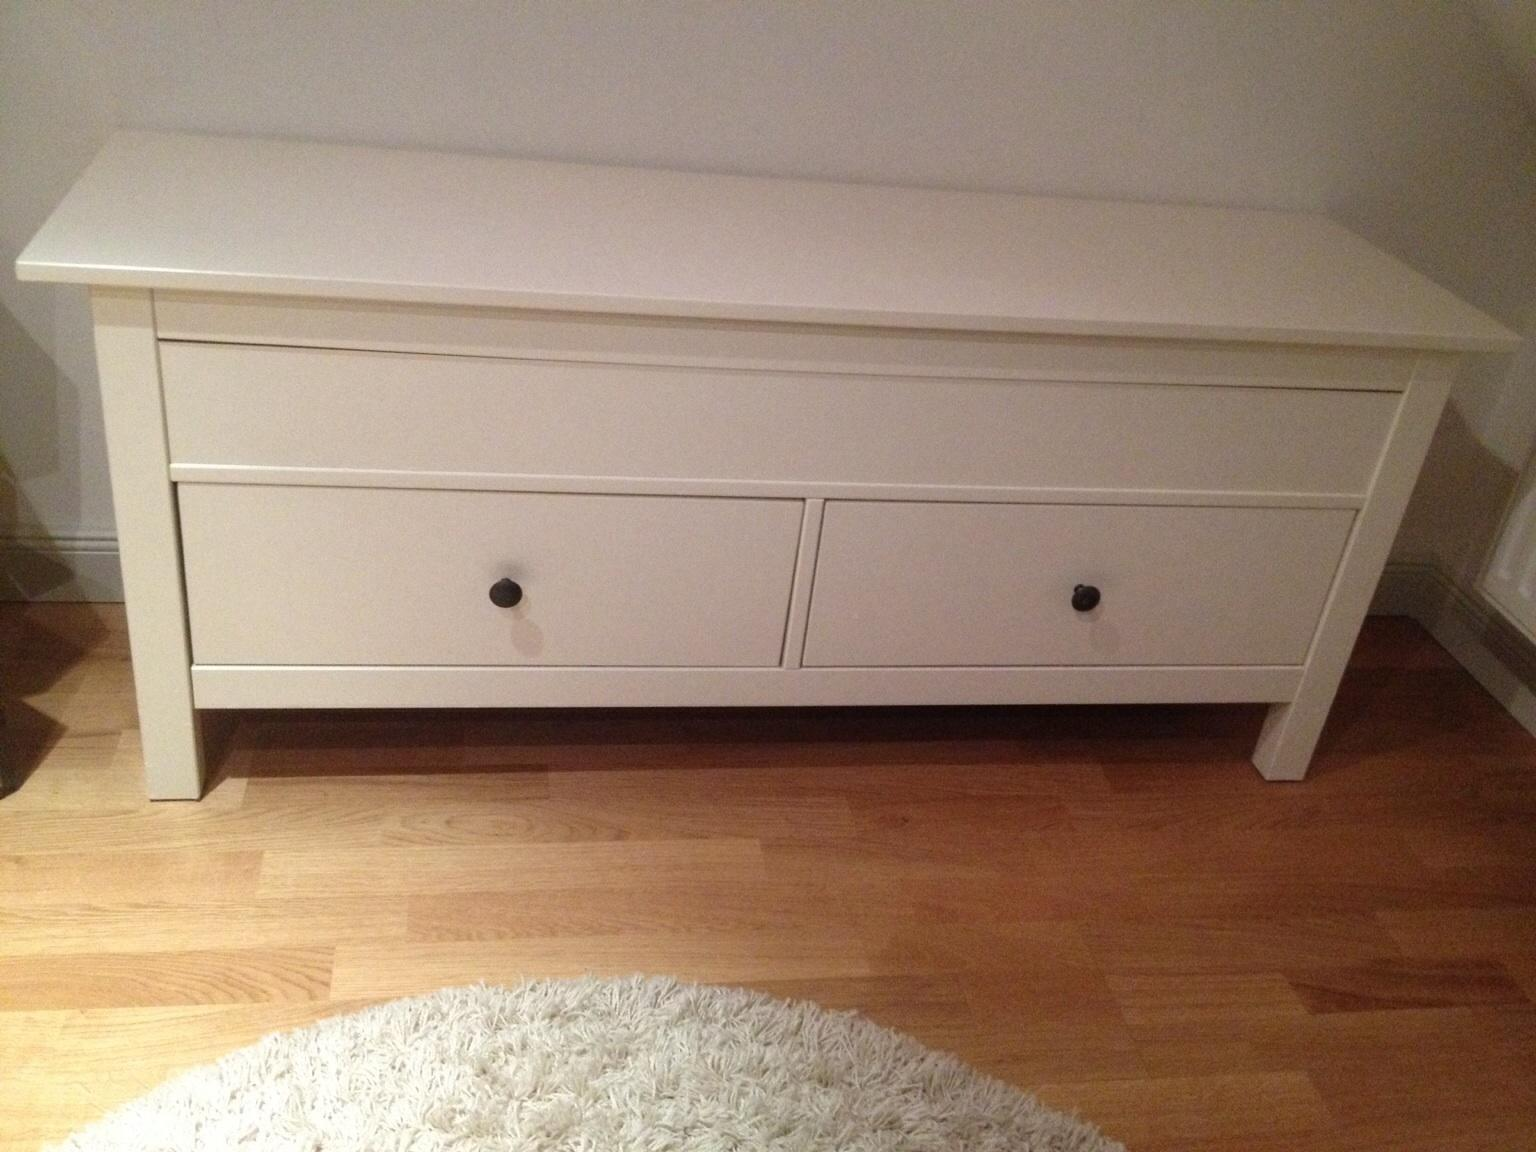 Ikea Hemnes Truhe/ Bank in 14467 Potsdam for €133.00 for